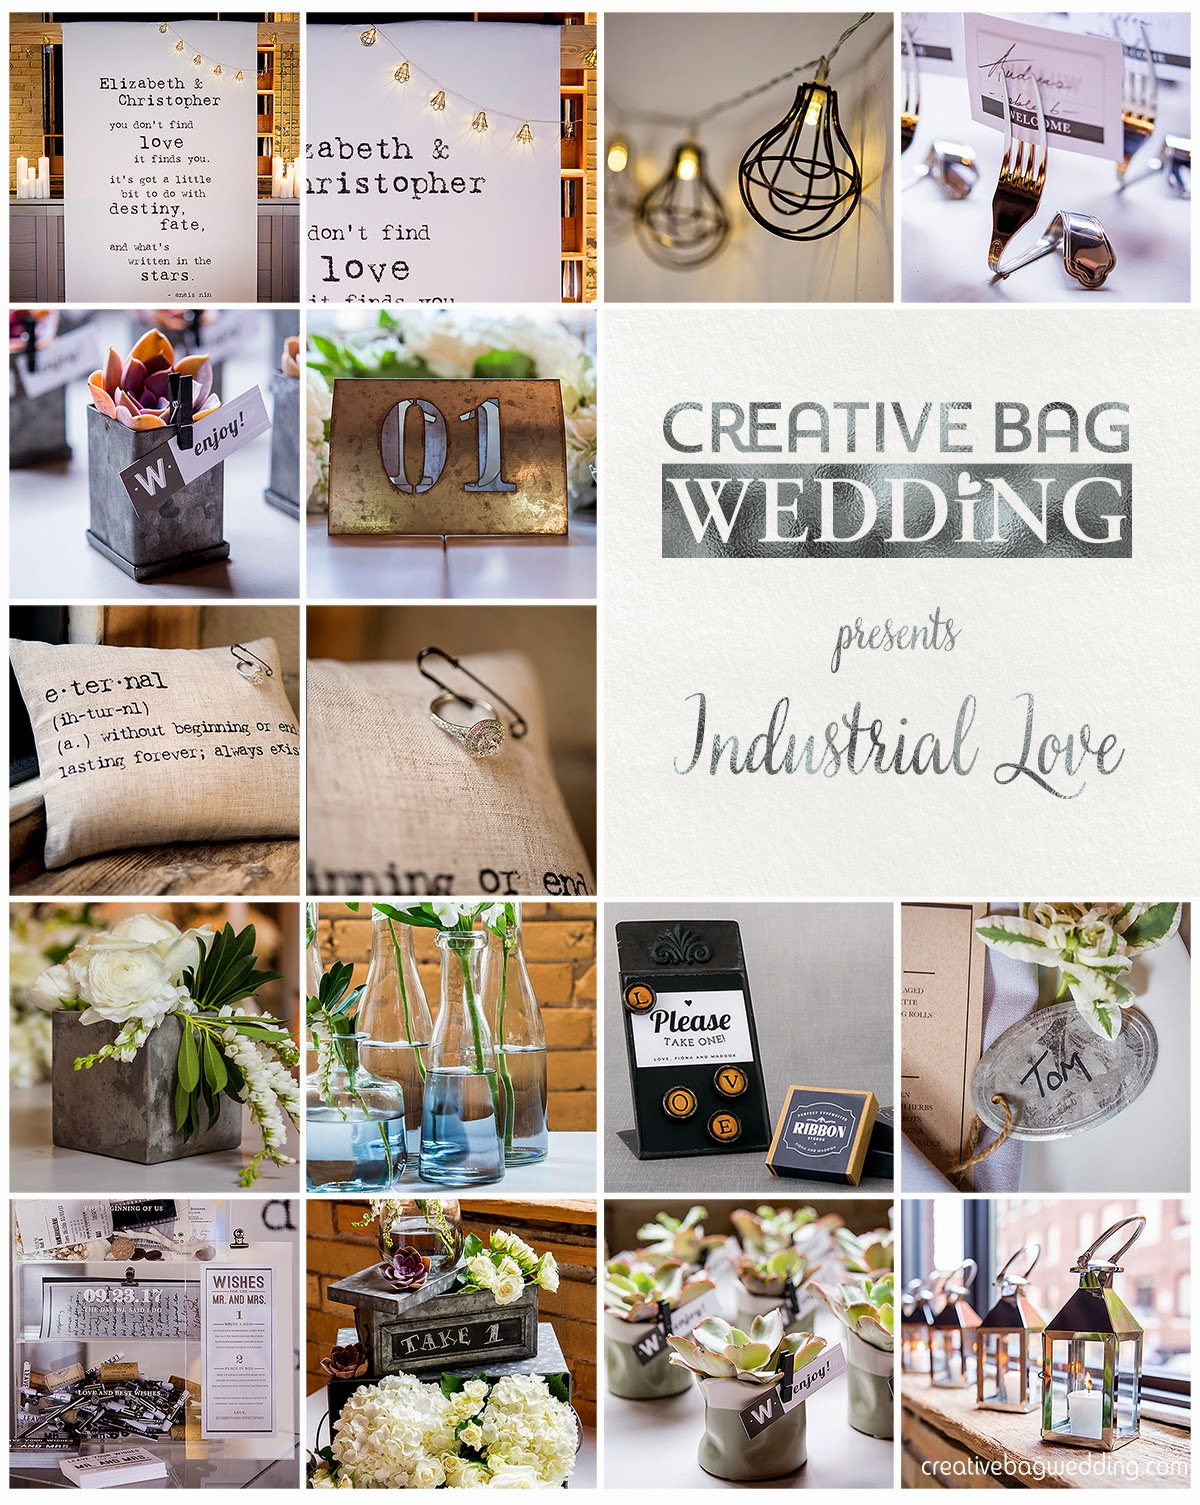 Industrial Love mood board | Creative Bag Wedding